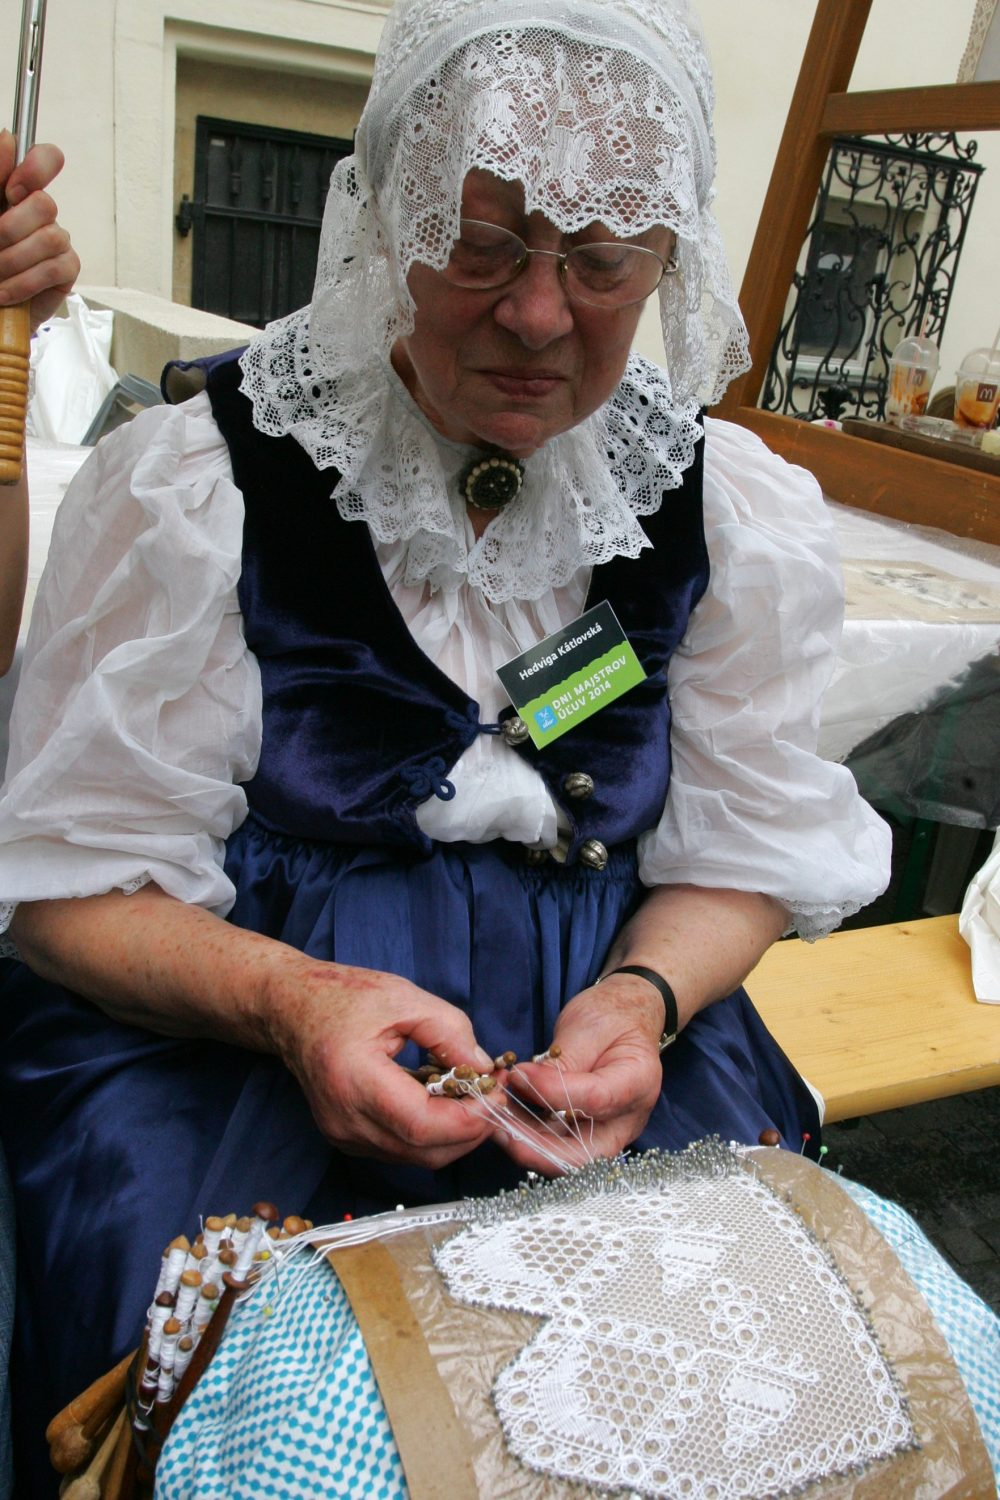 Producer of bobbin lace – Hedviga Kátlovská is one of seven producers who obtained the title of Master of Folk Art Production in 2015 (photo by Centre for Folk Art Production)